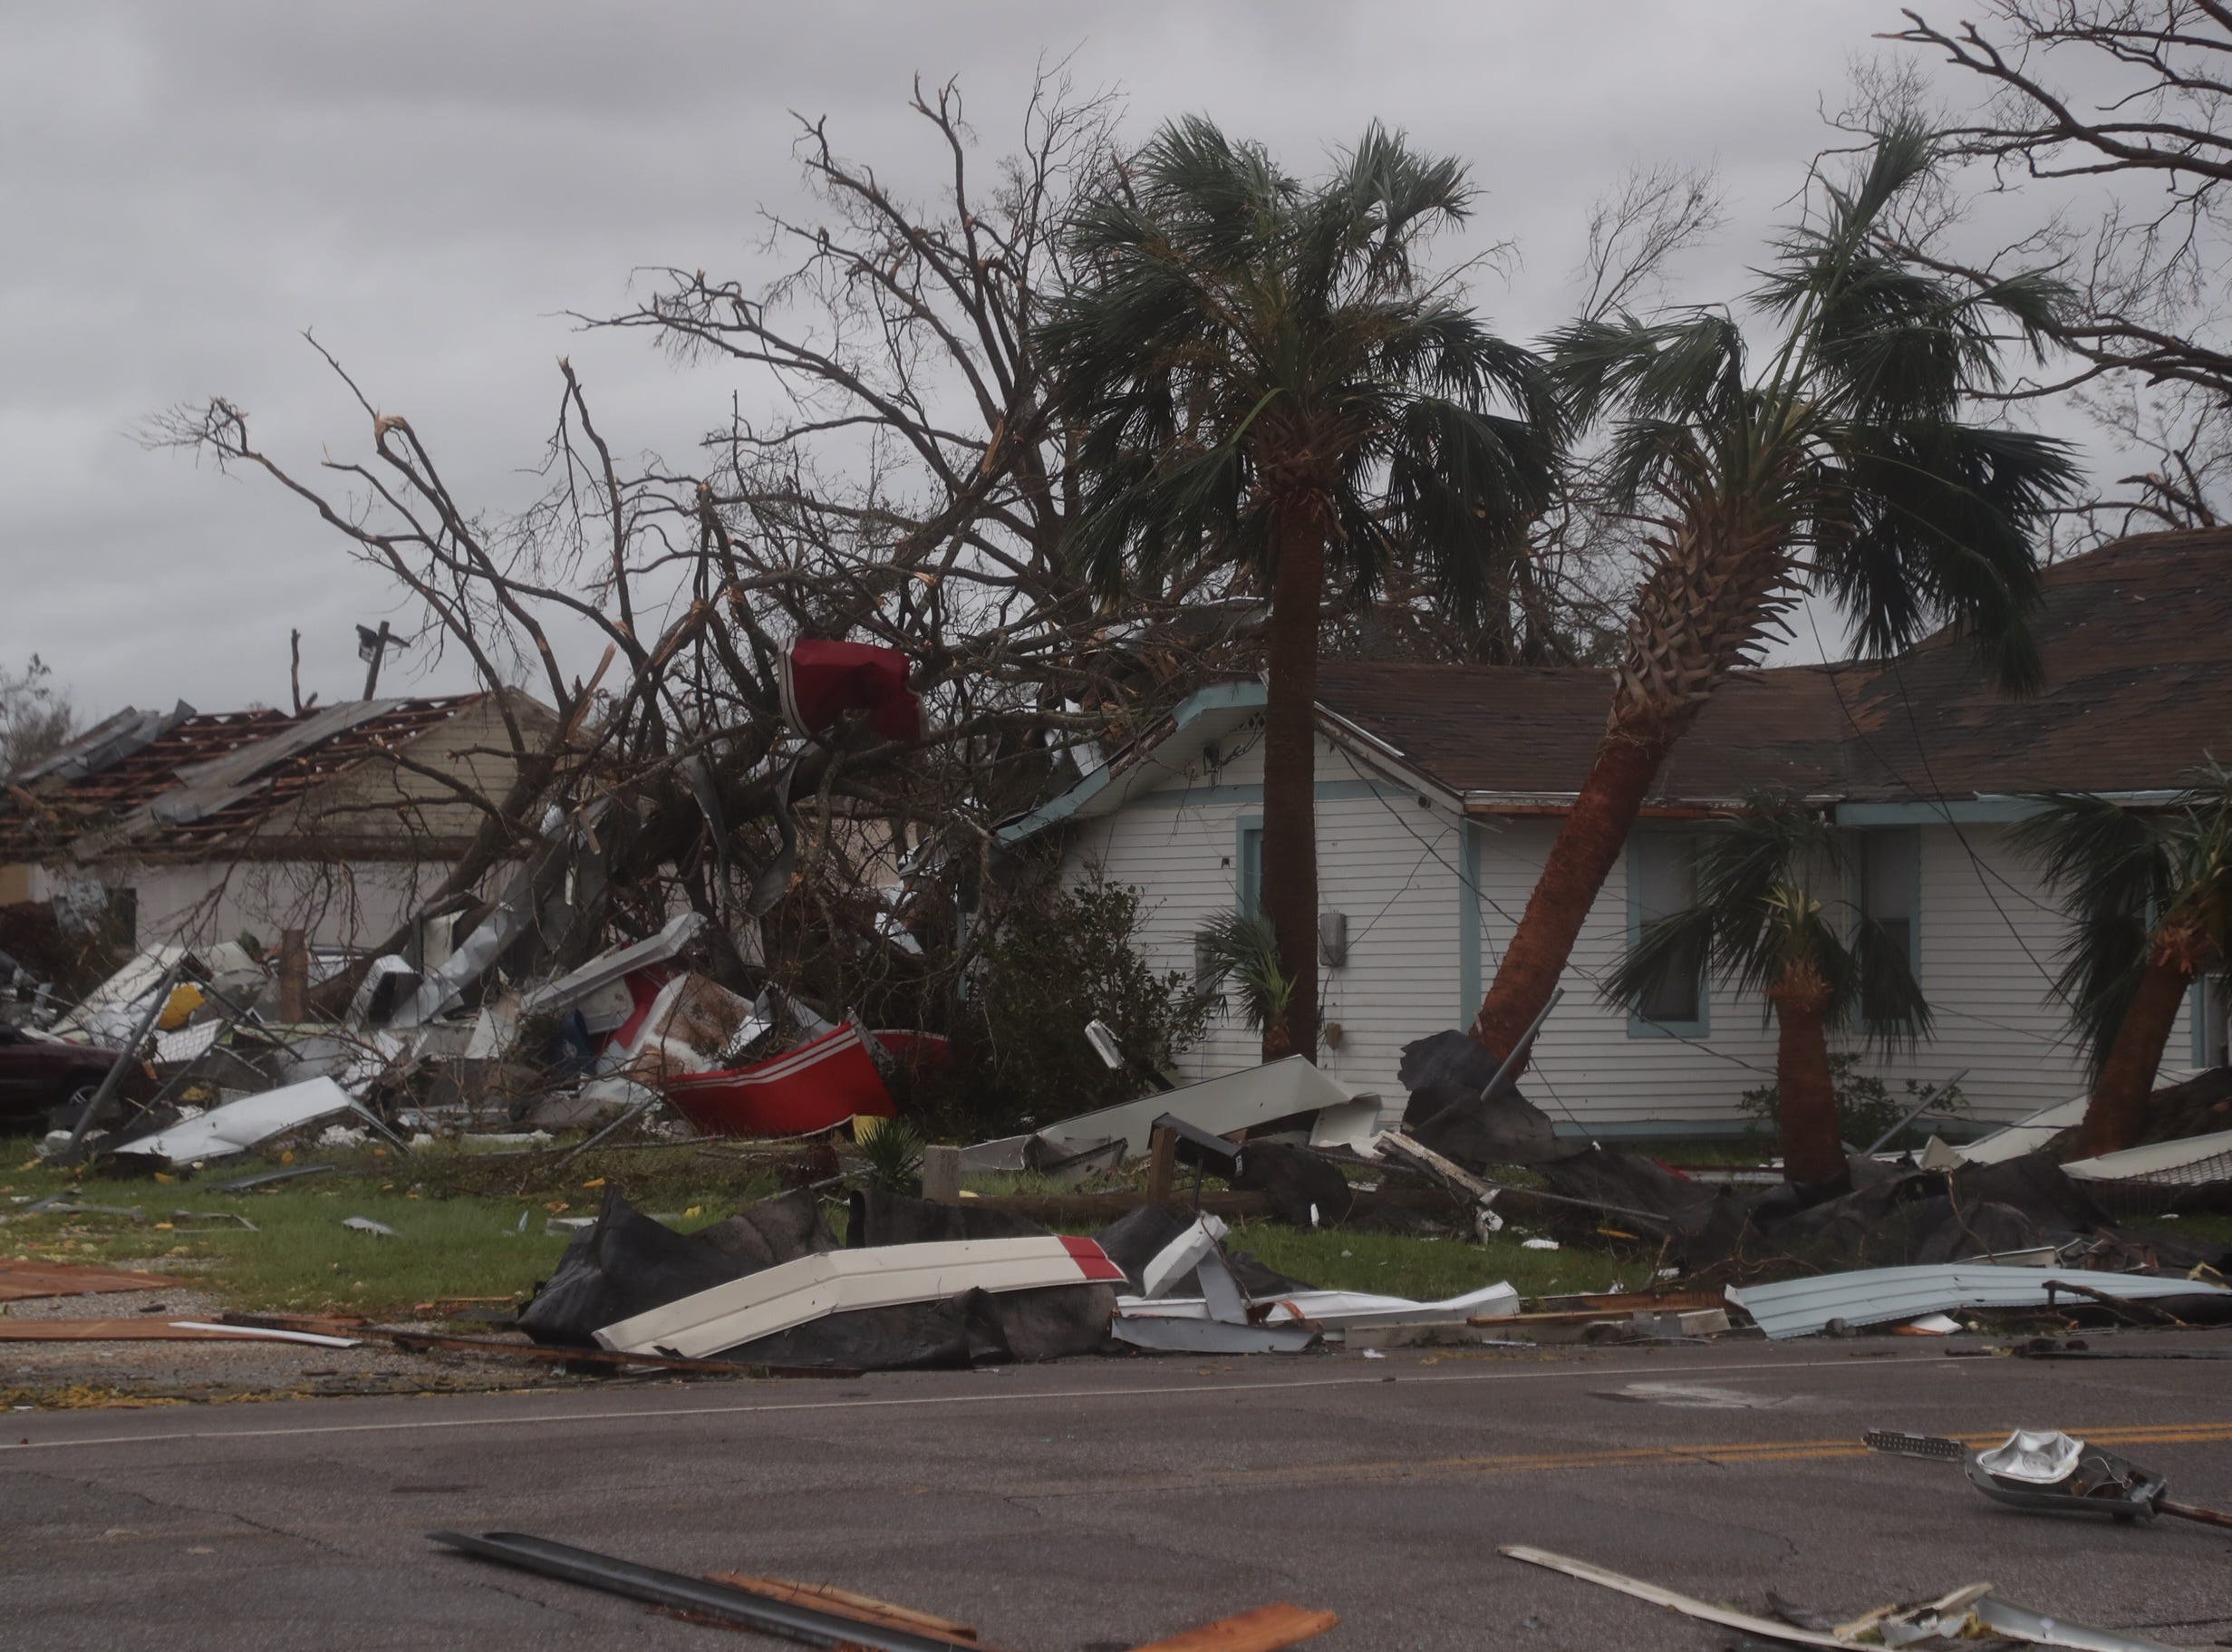 Damage from Hurricane Michael in Panama City, Florida on Wednesday Oct. 10, 2018.